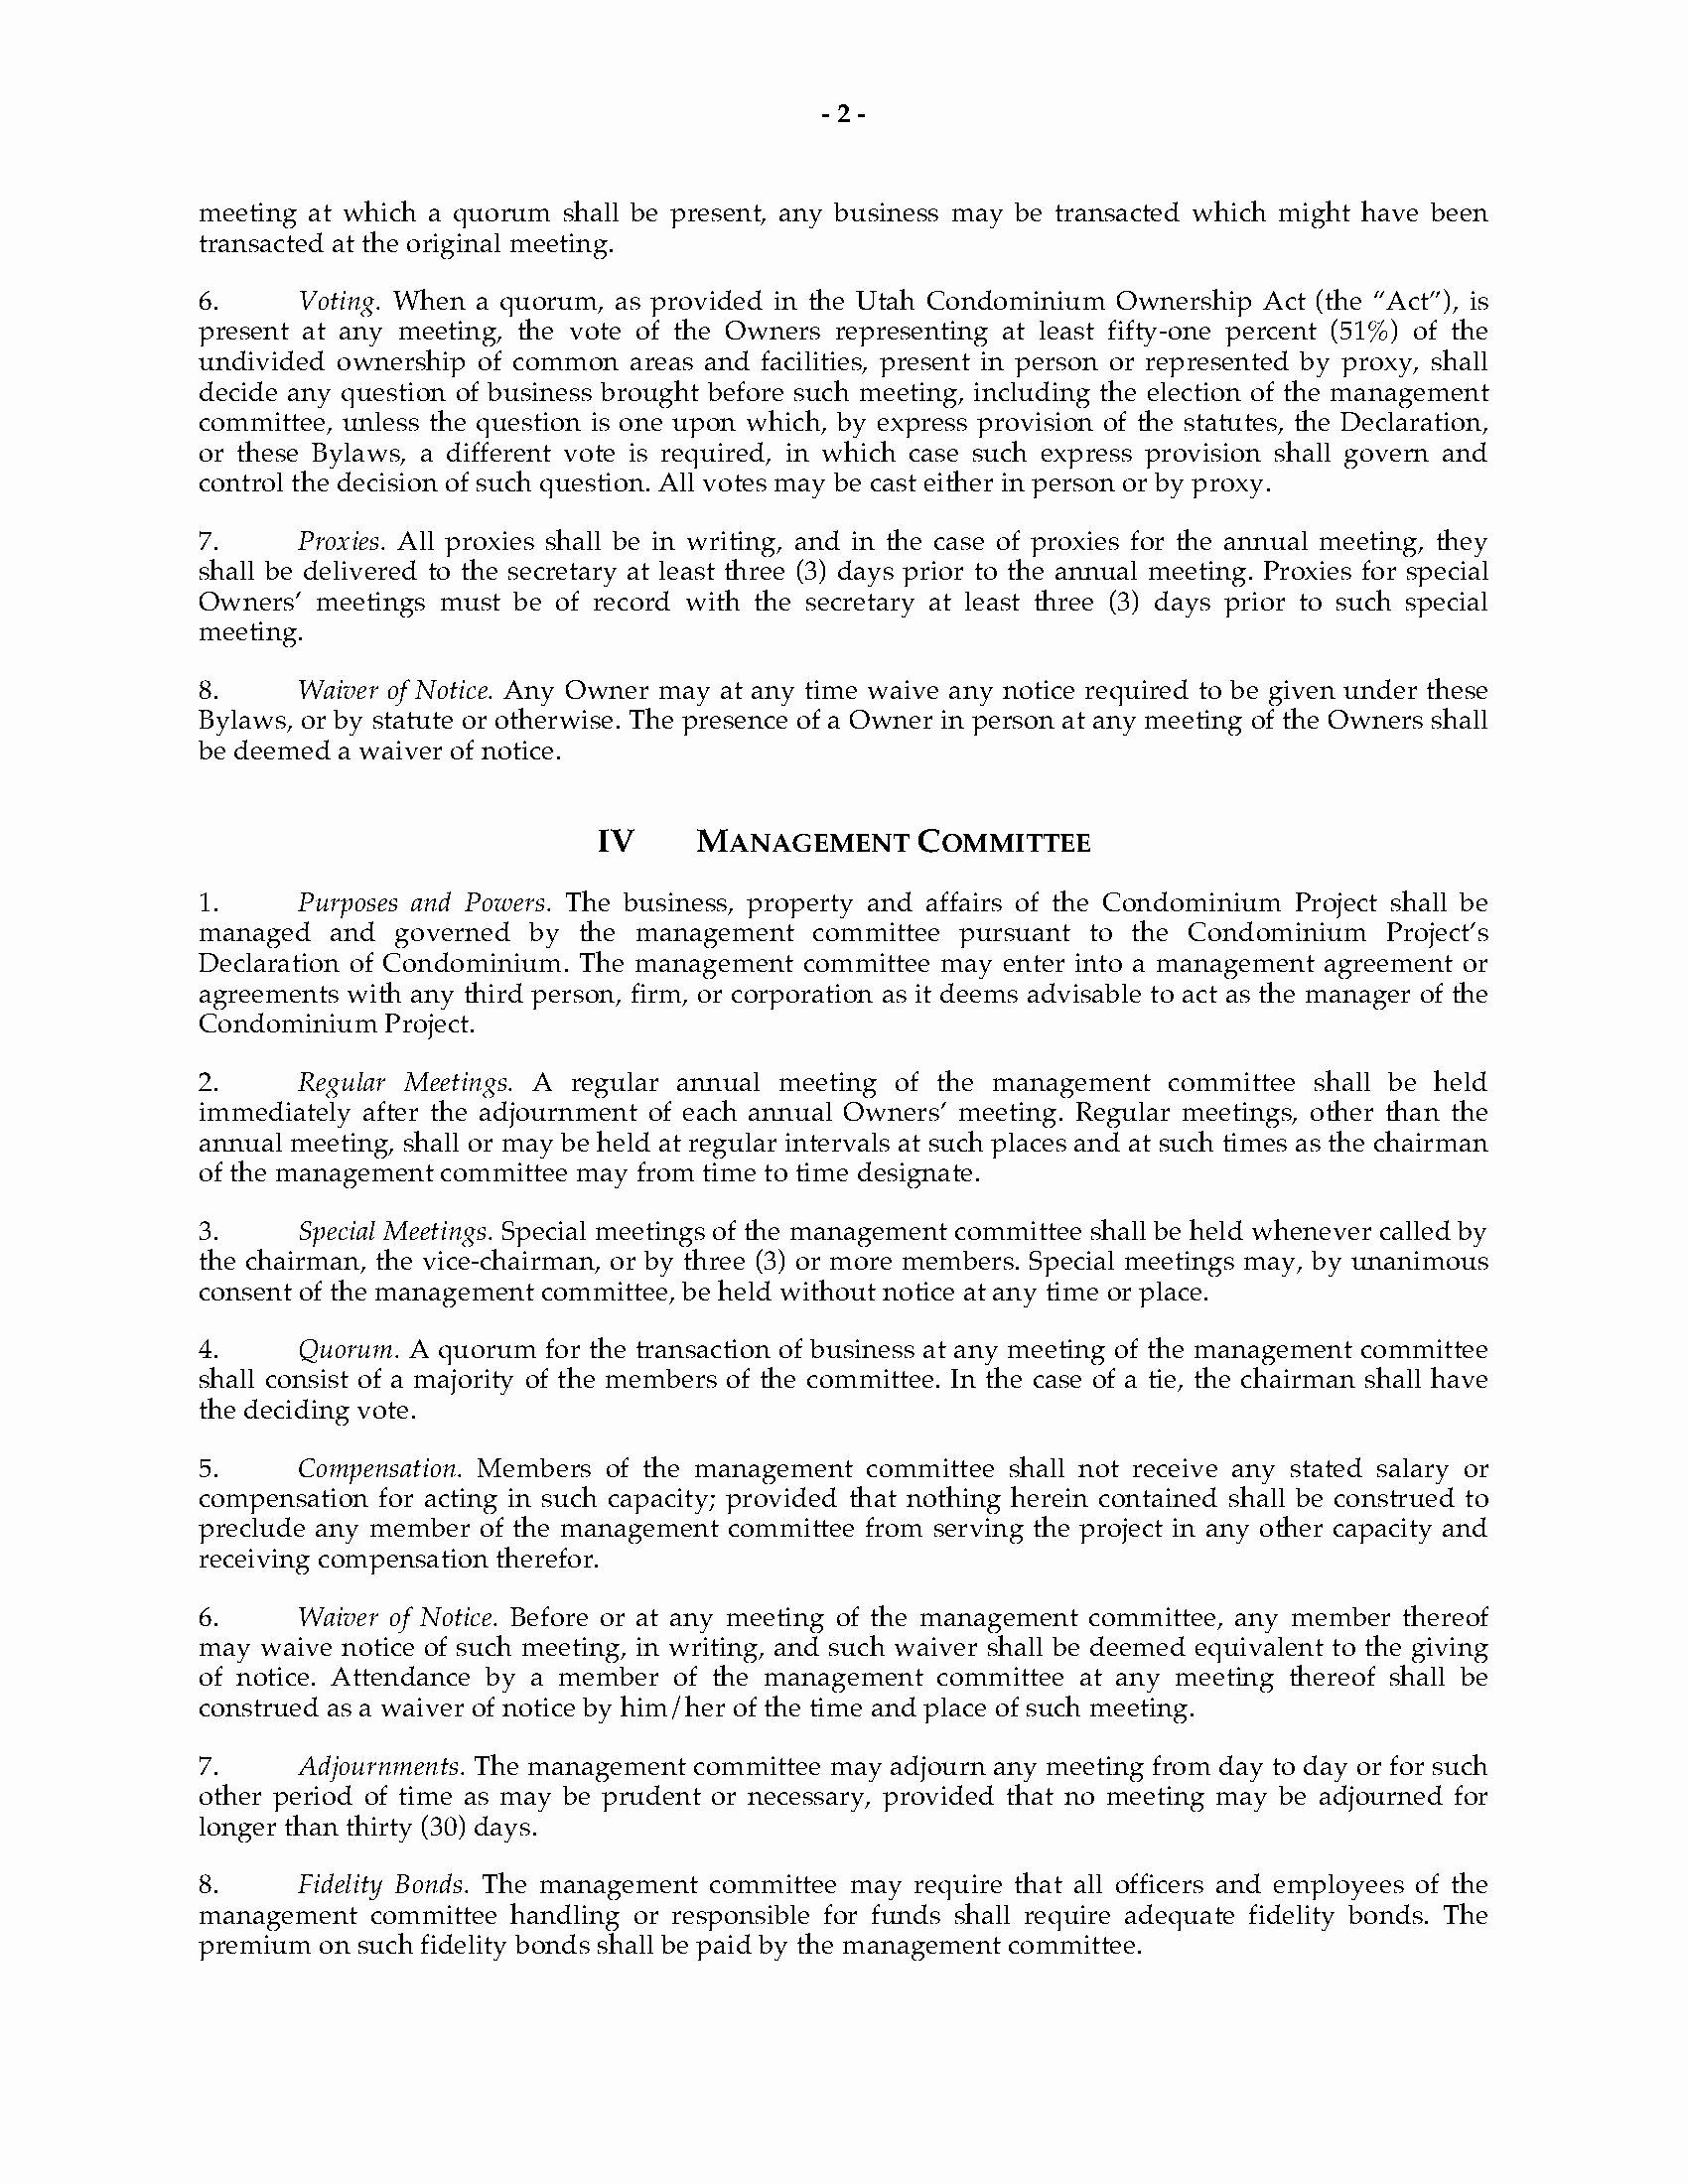 Texas bylaws Template Best Of Utah Condominium bylaws and Rules